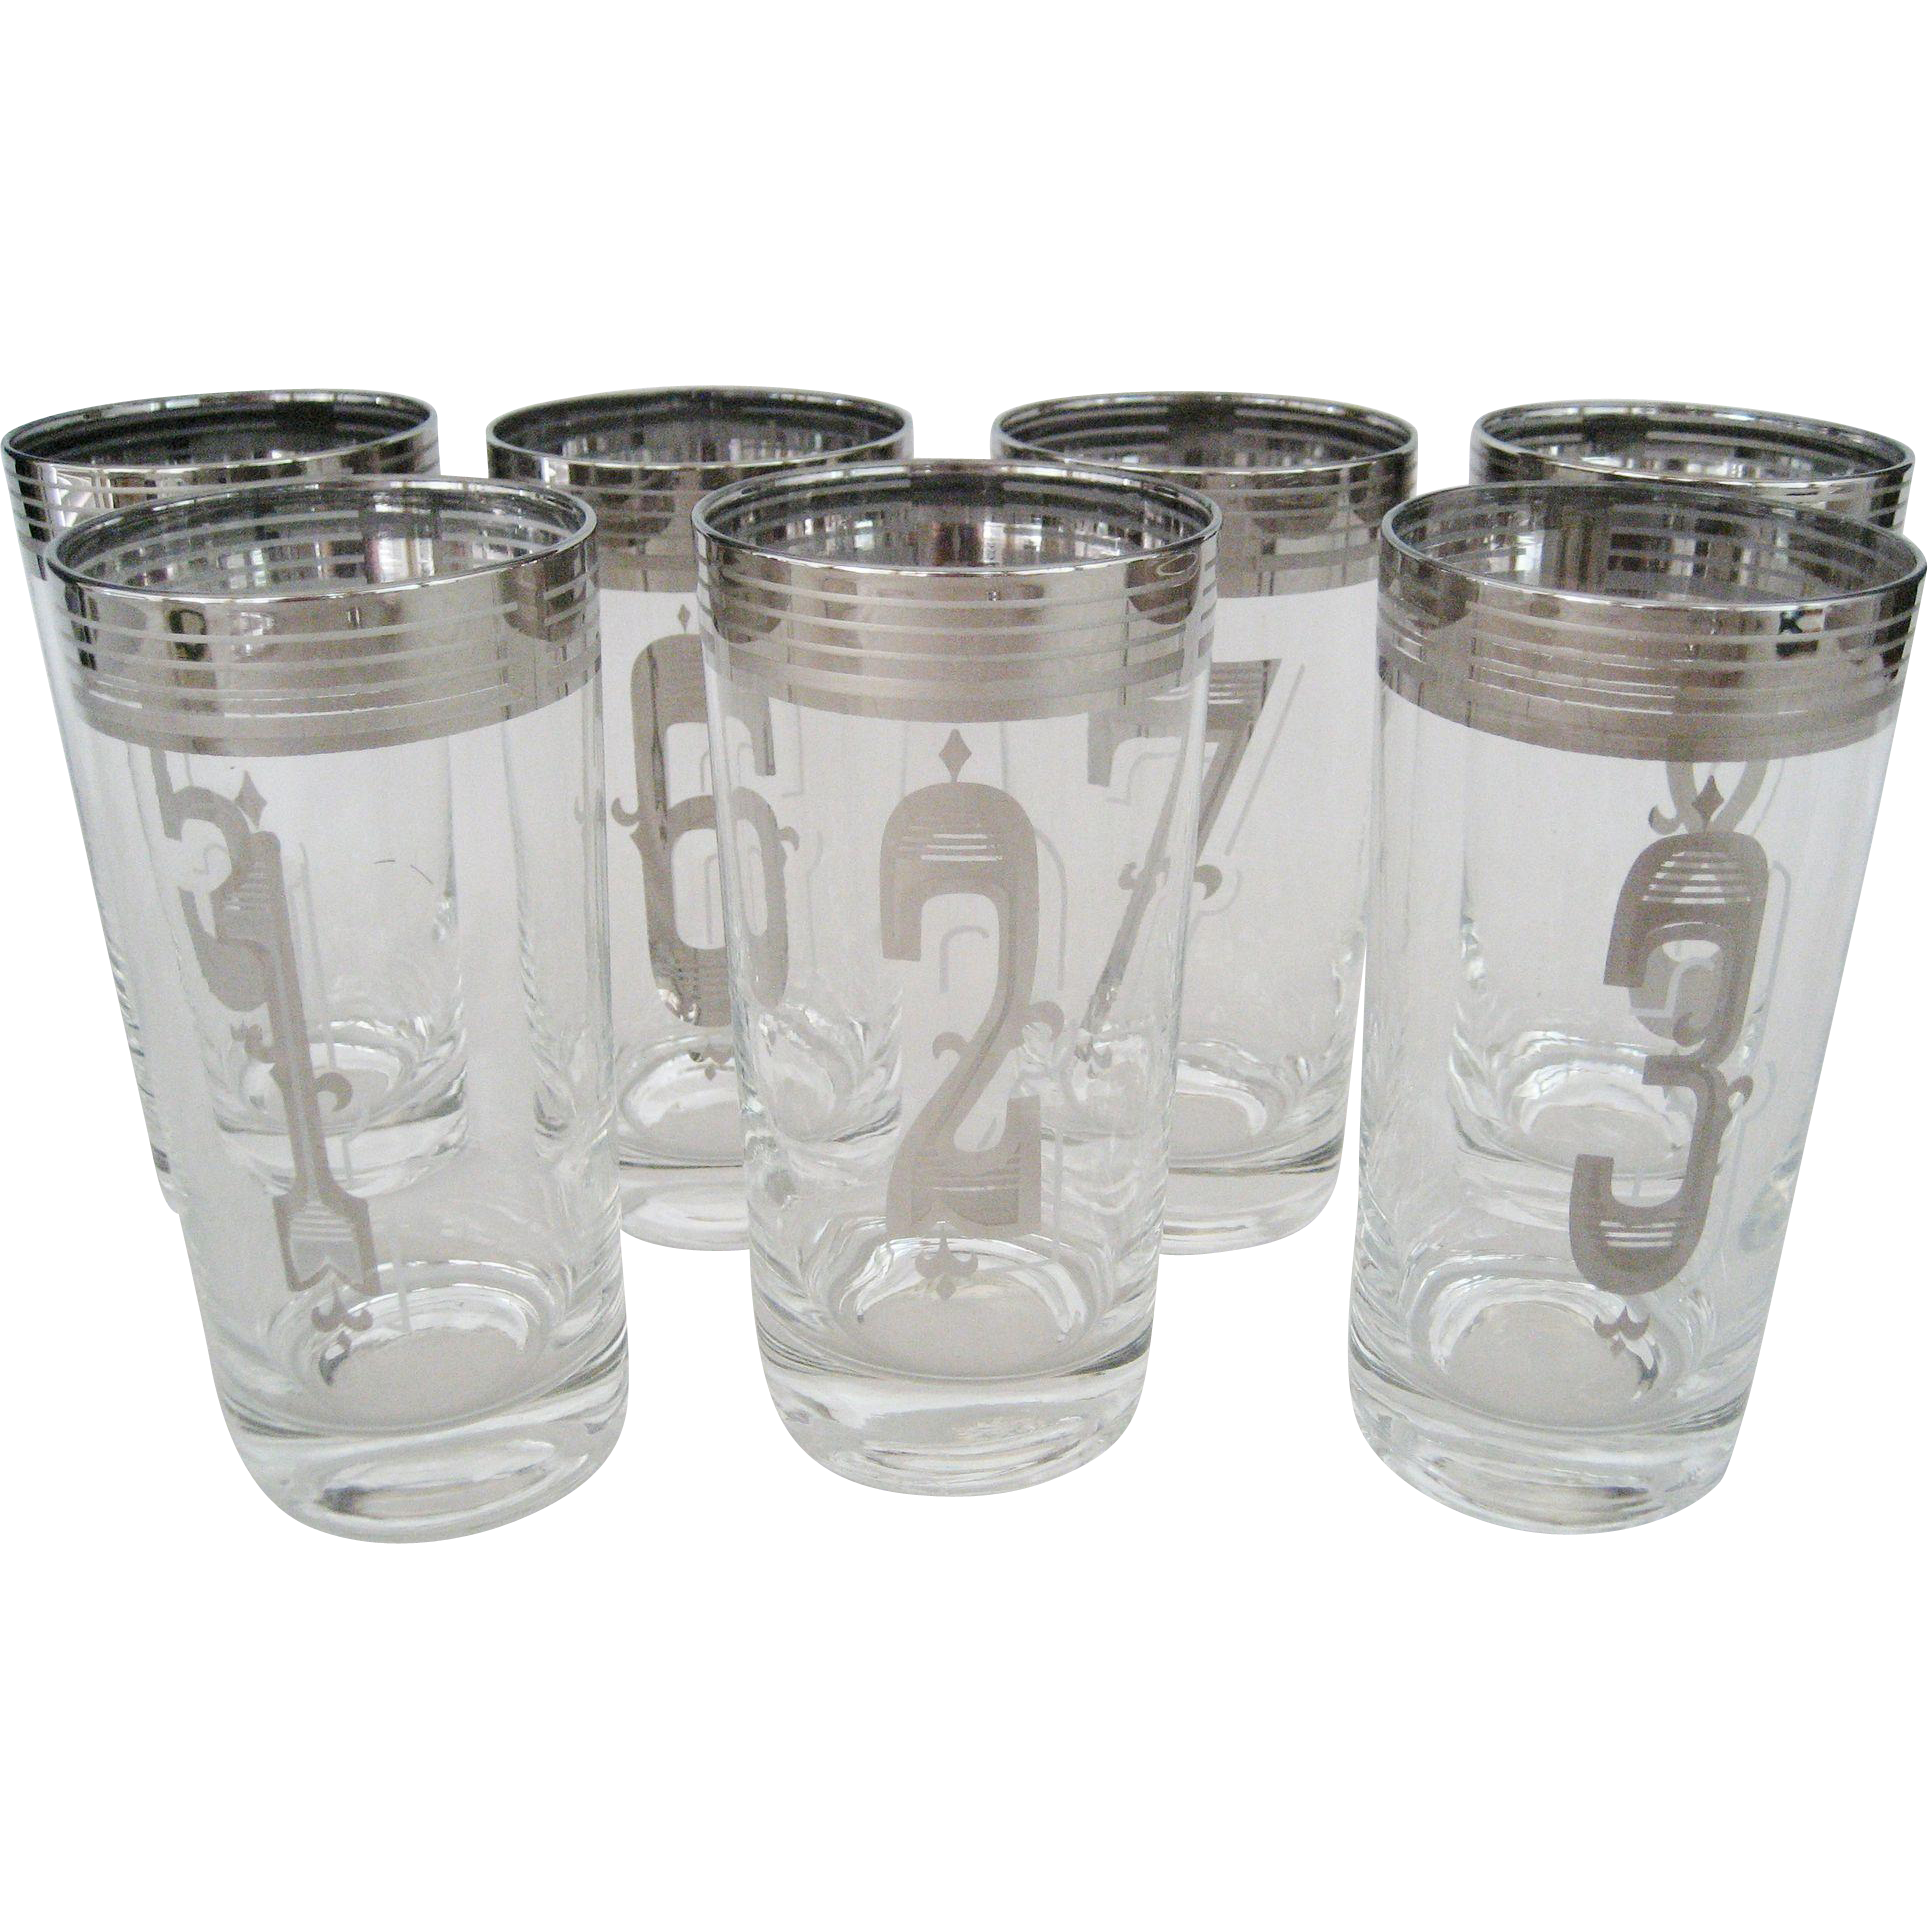 Set of 7 Numbered Glass Tumblers - Silver-Toned